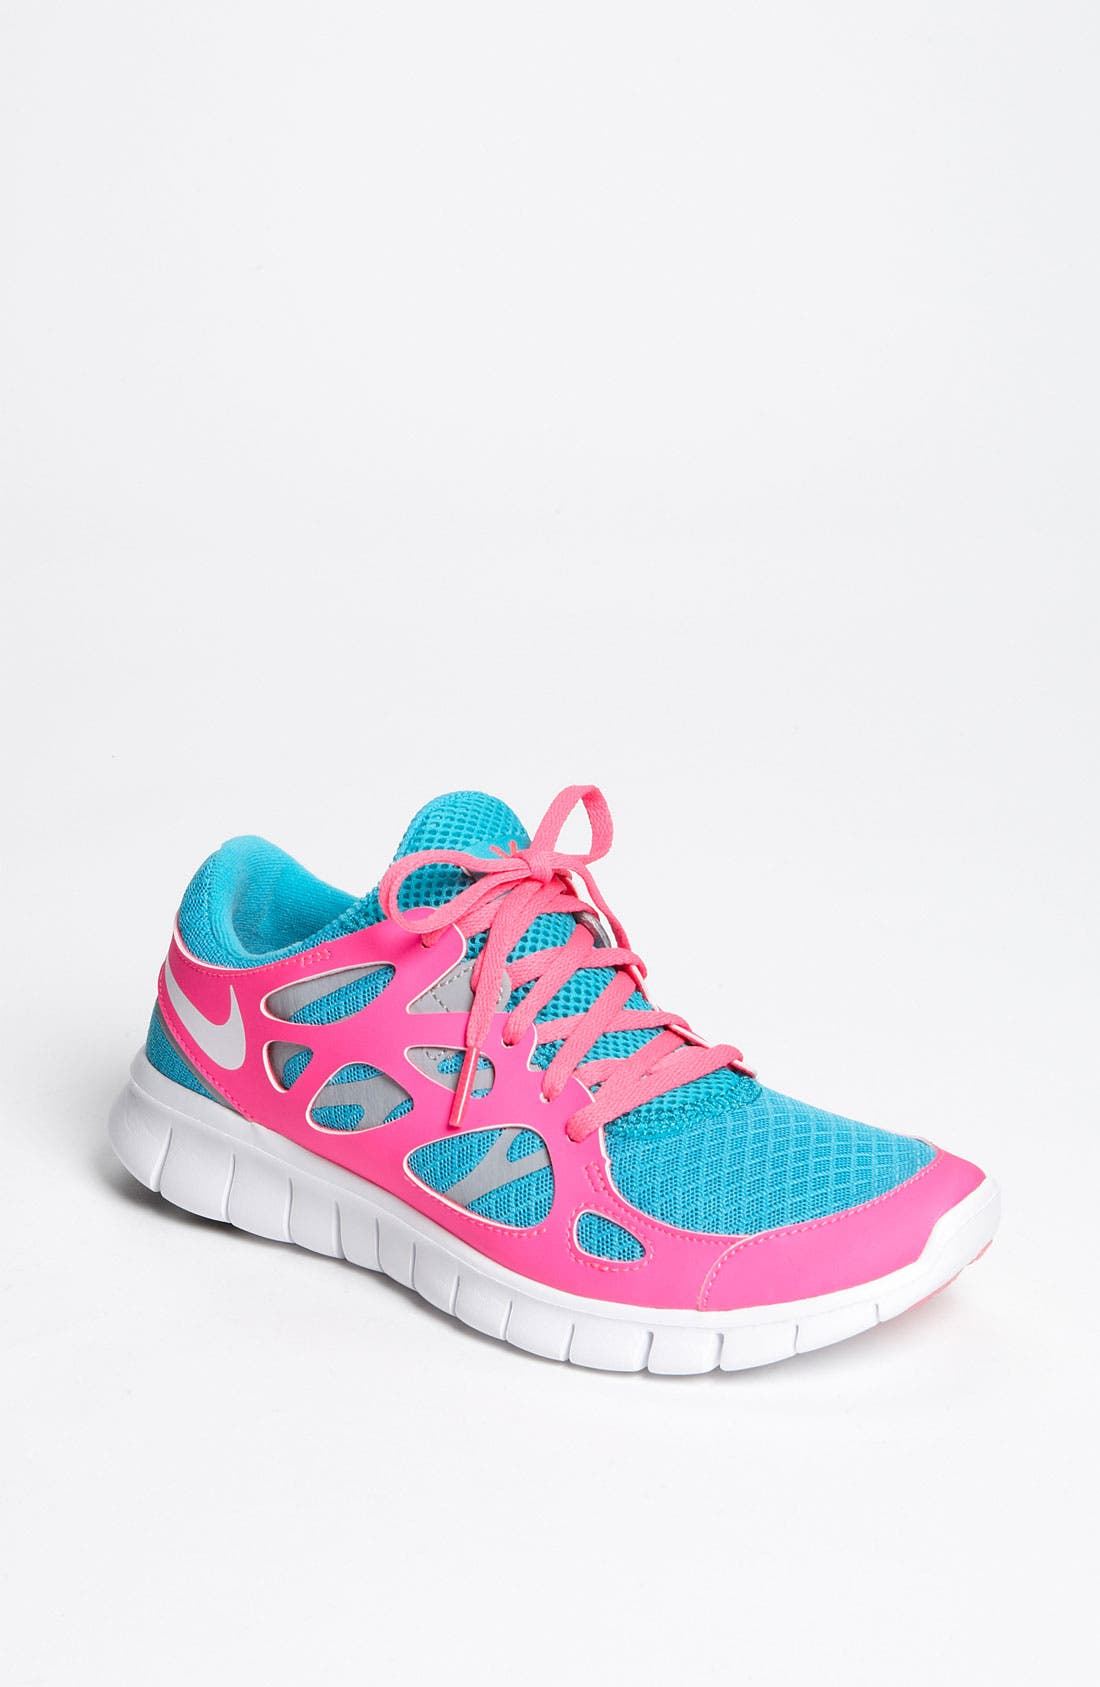 Main Image - Nike 'Free Run 2+' Running Shoe (Women)